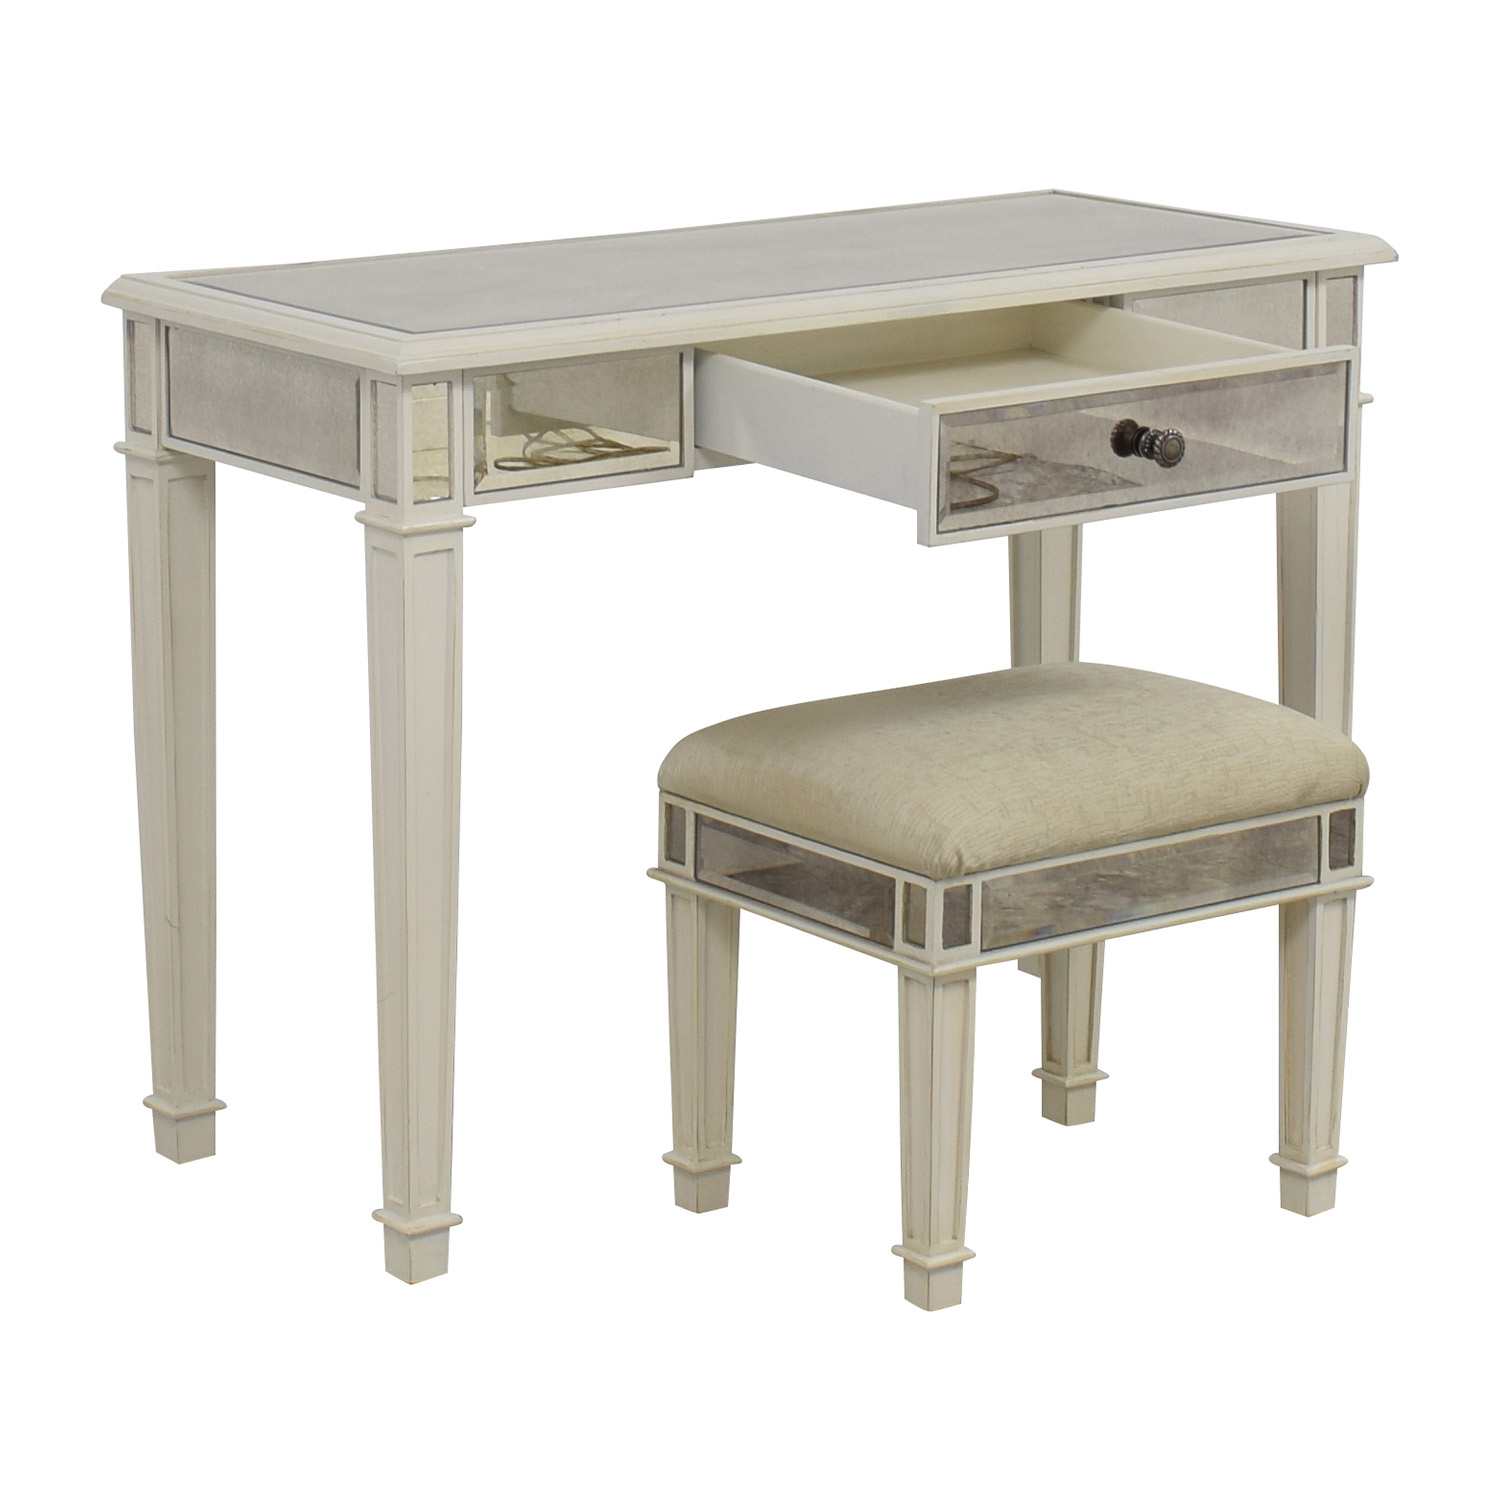 Pier 1 Imports Pier 1 Imports Antique White Mirrored Vanity Table and Stool Utility Tables